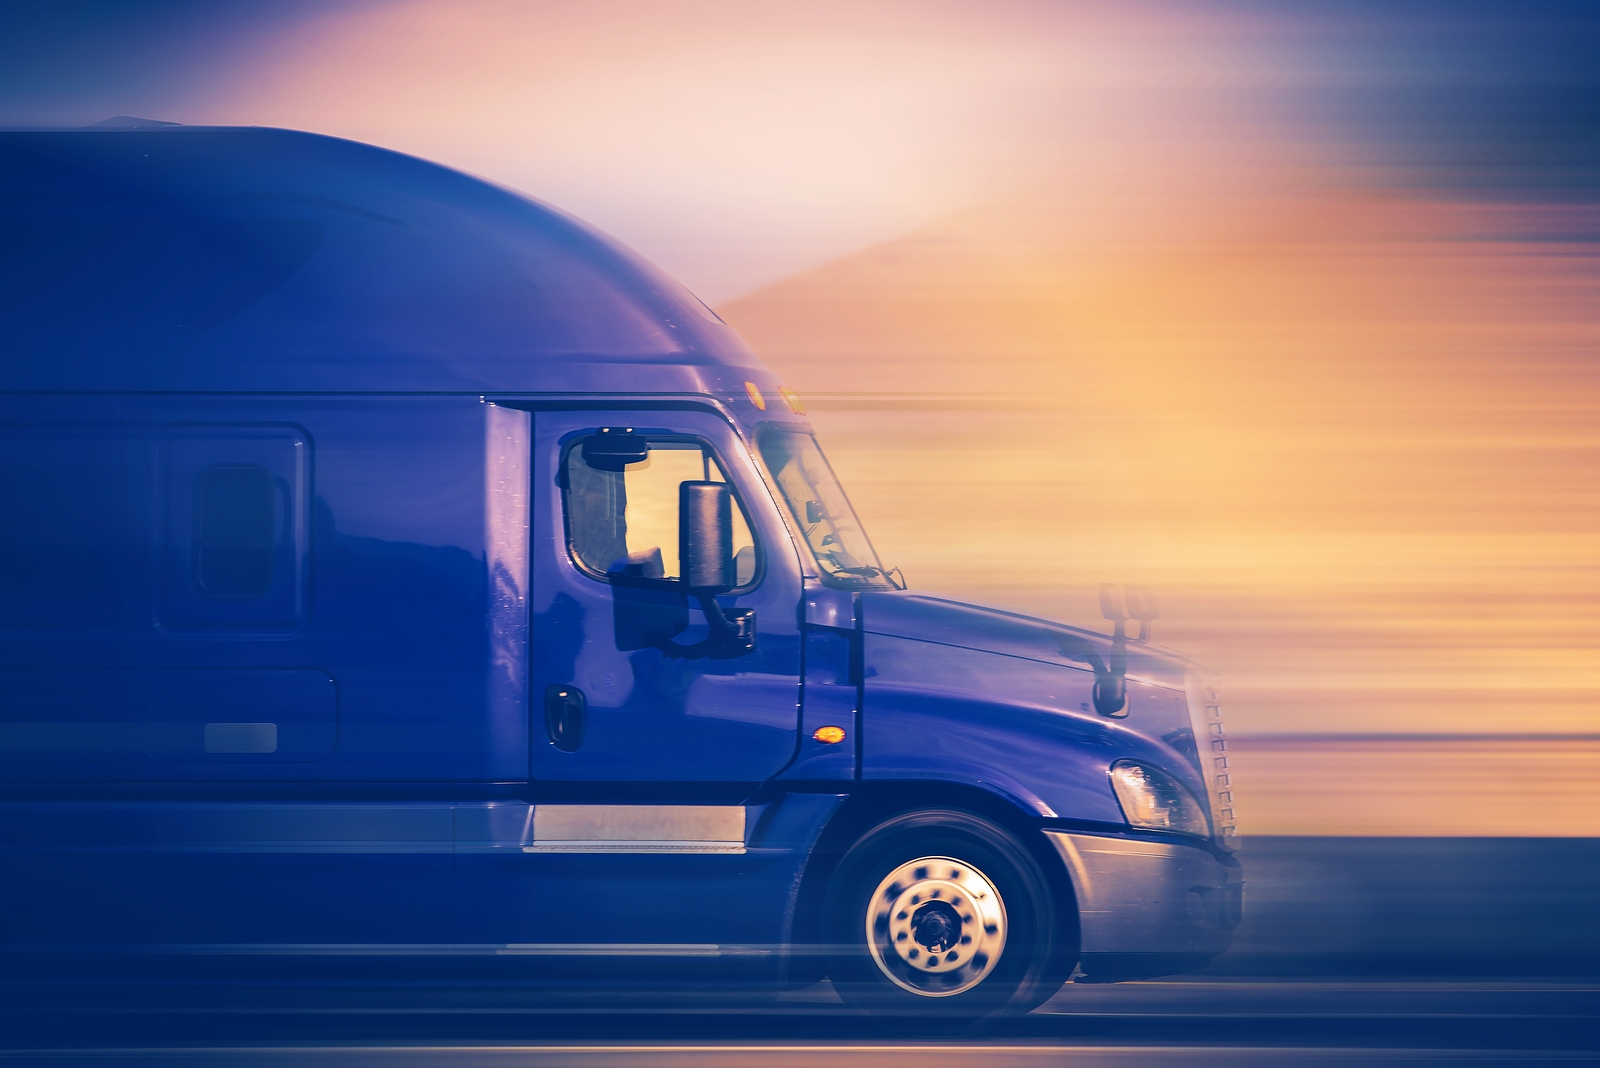 DOT Physical Exam for CDL: The most important safety feature is YOU!